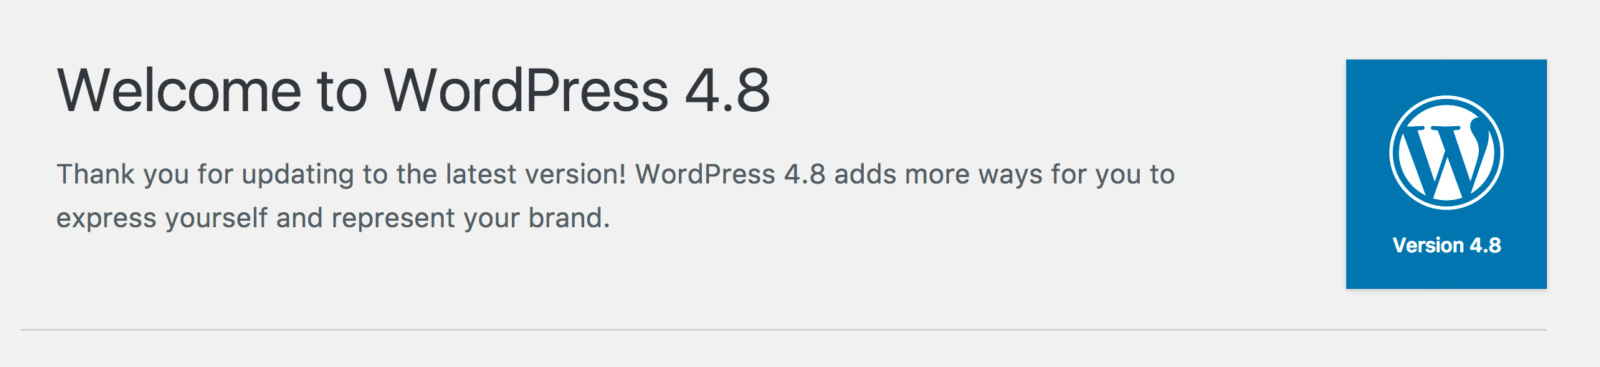 wordpress version 4 8